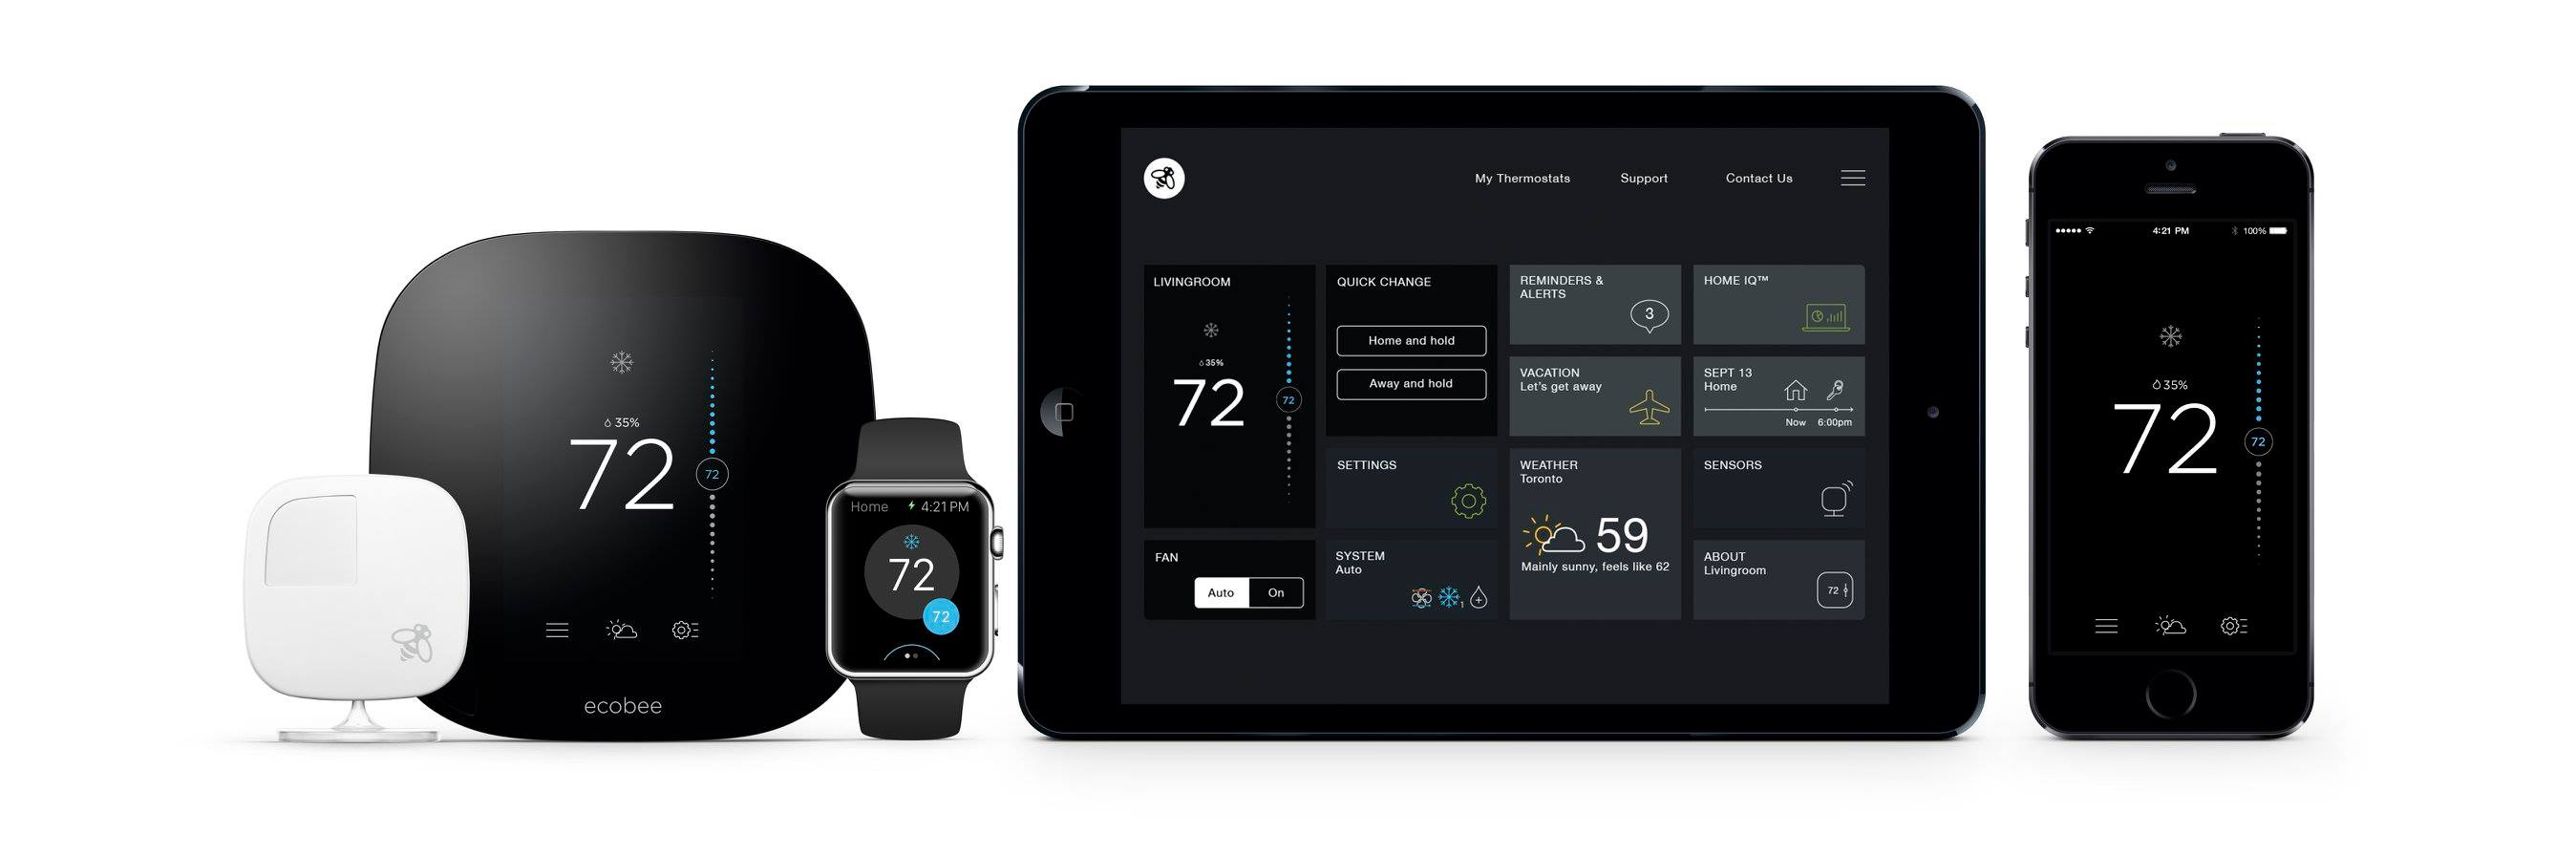 Save on energy costs in El Paso with Ecobee4 Smart Thermostat